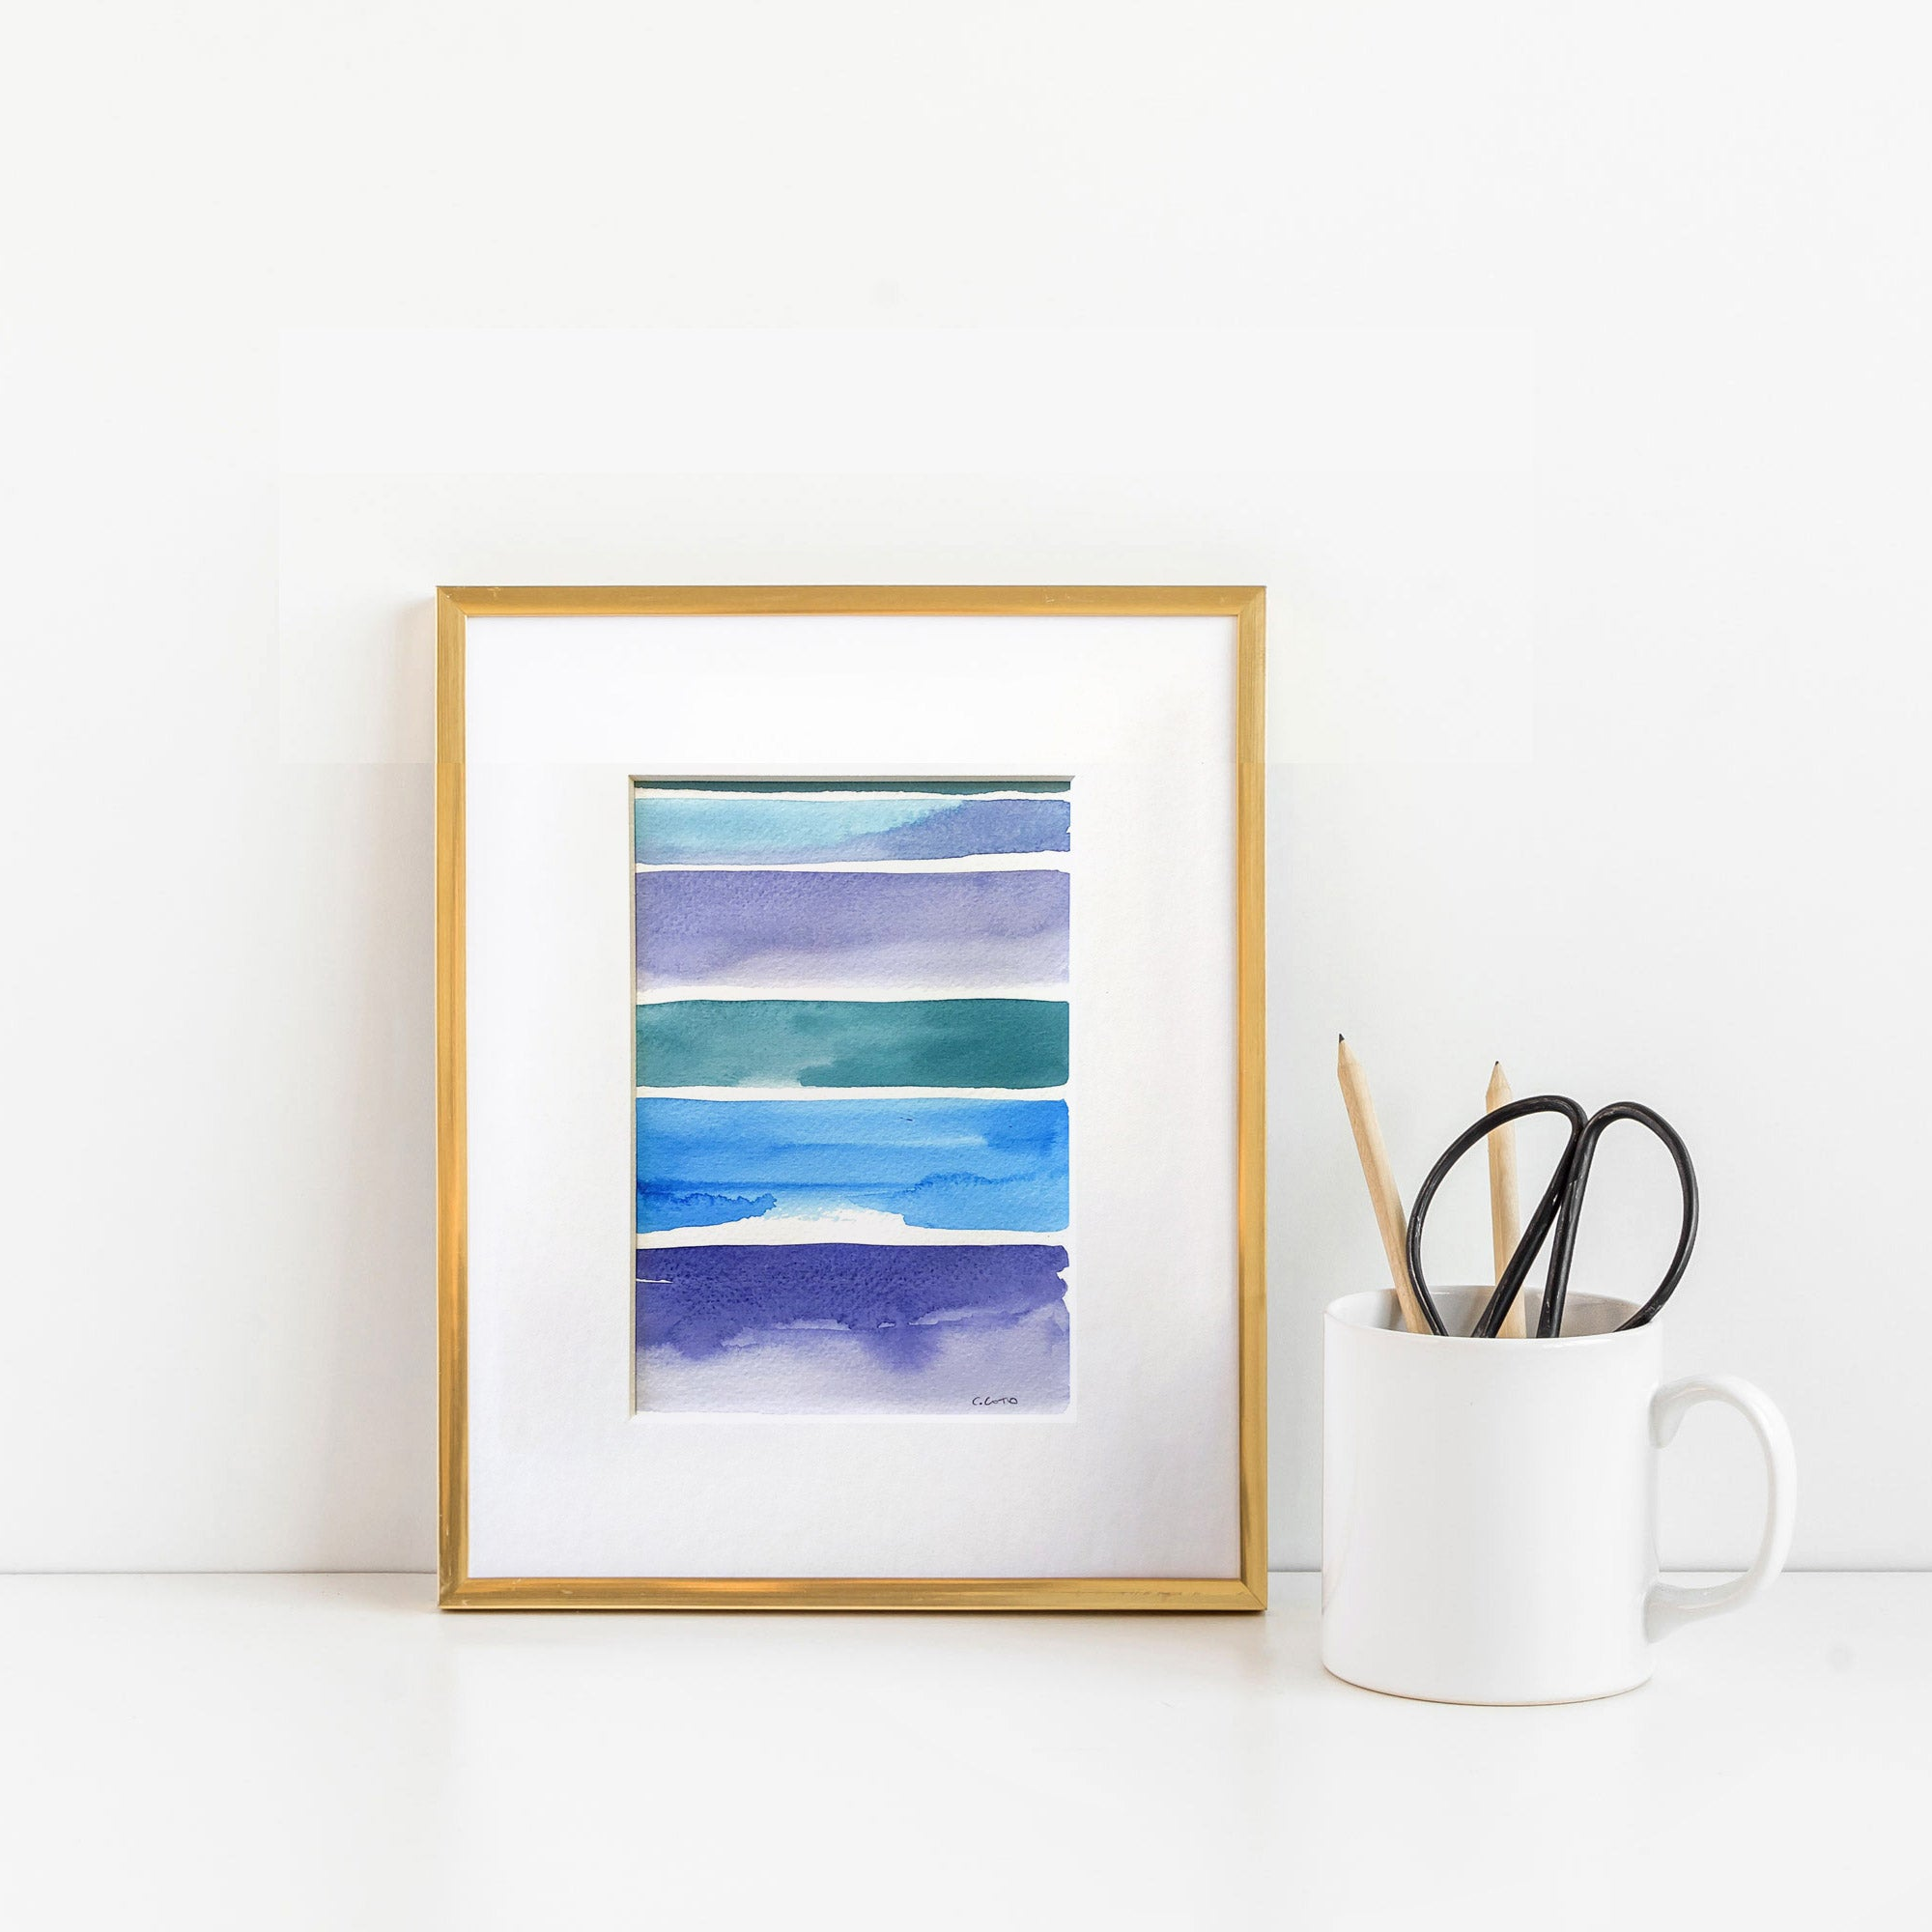 Watercolor Blocks - Unframed, Matted to Standard Frame Size